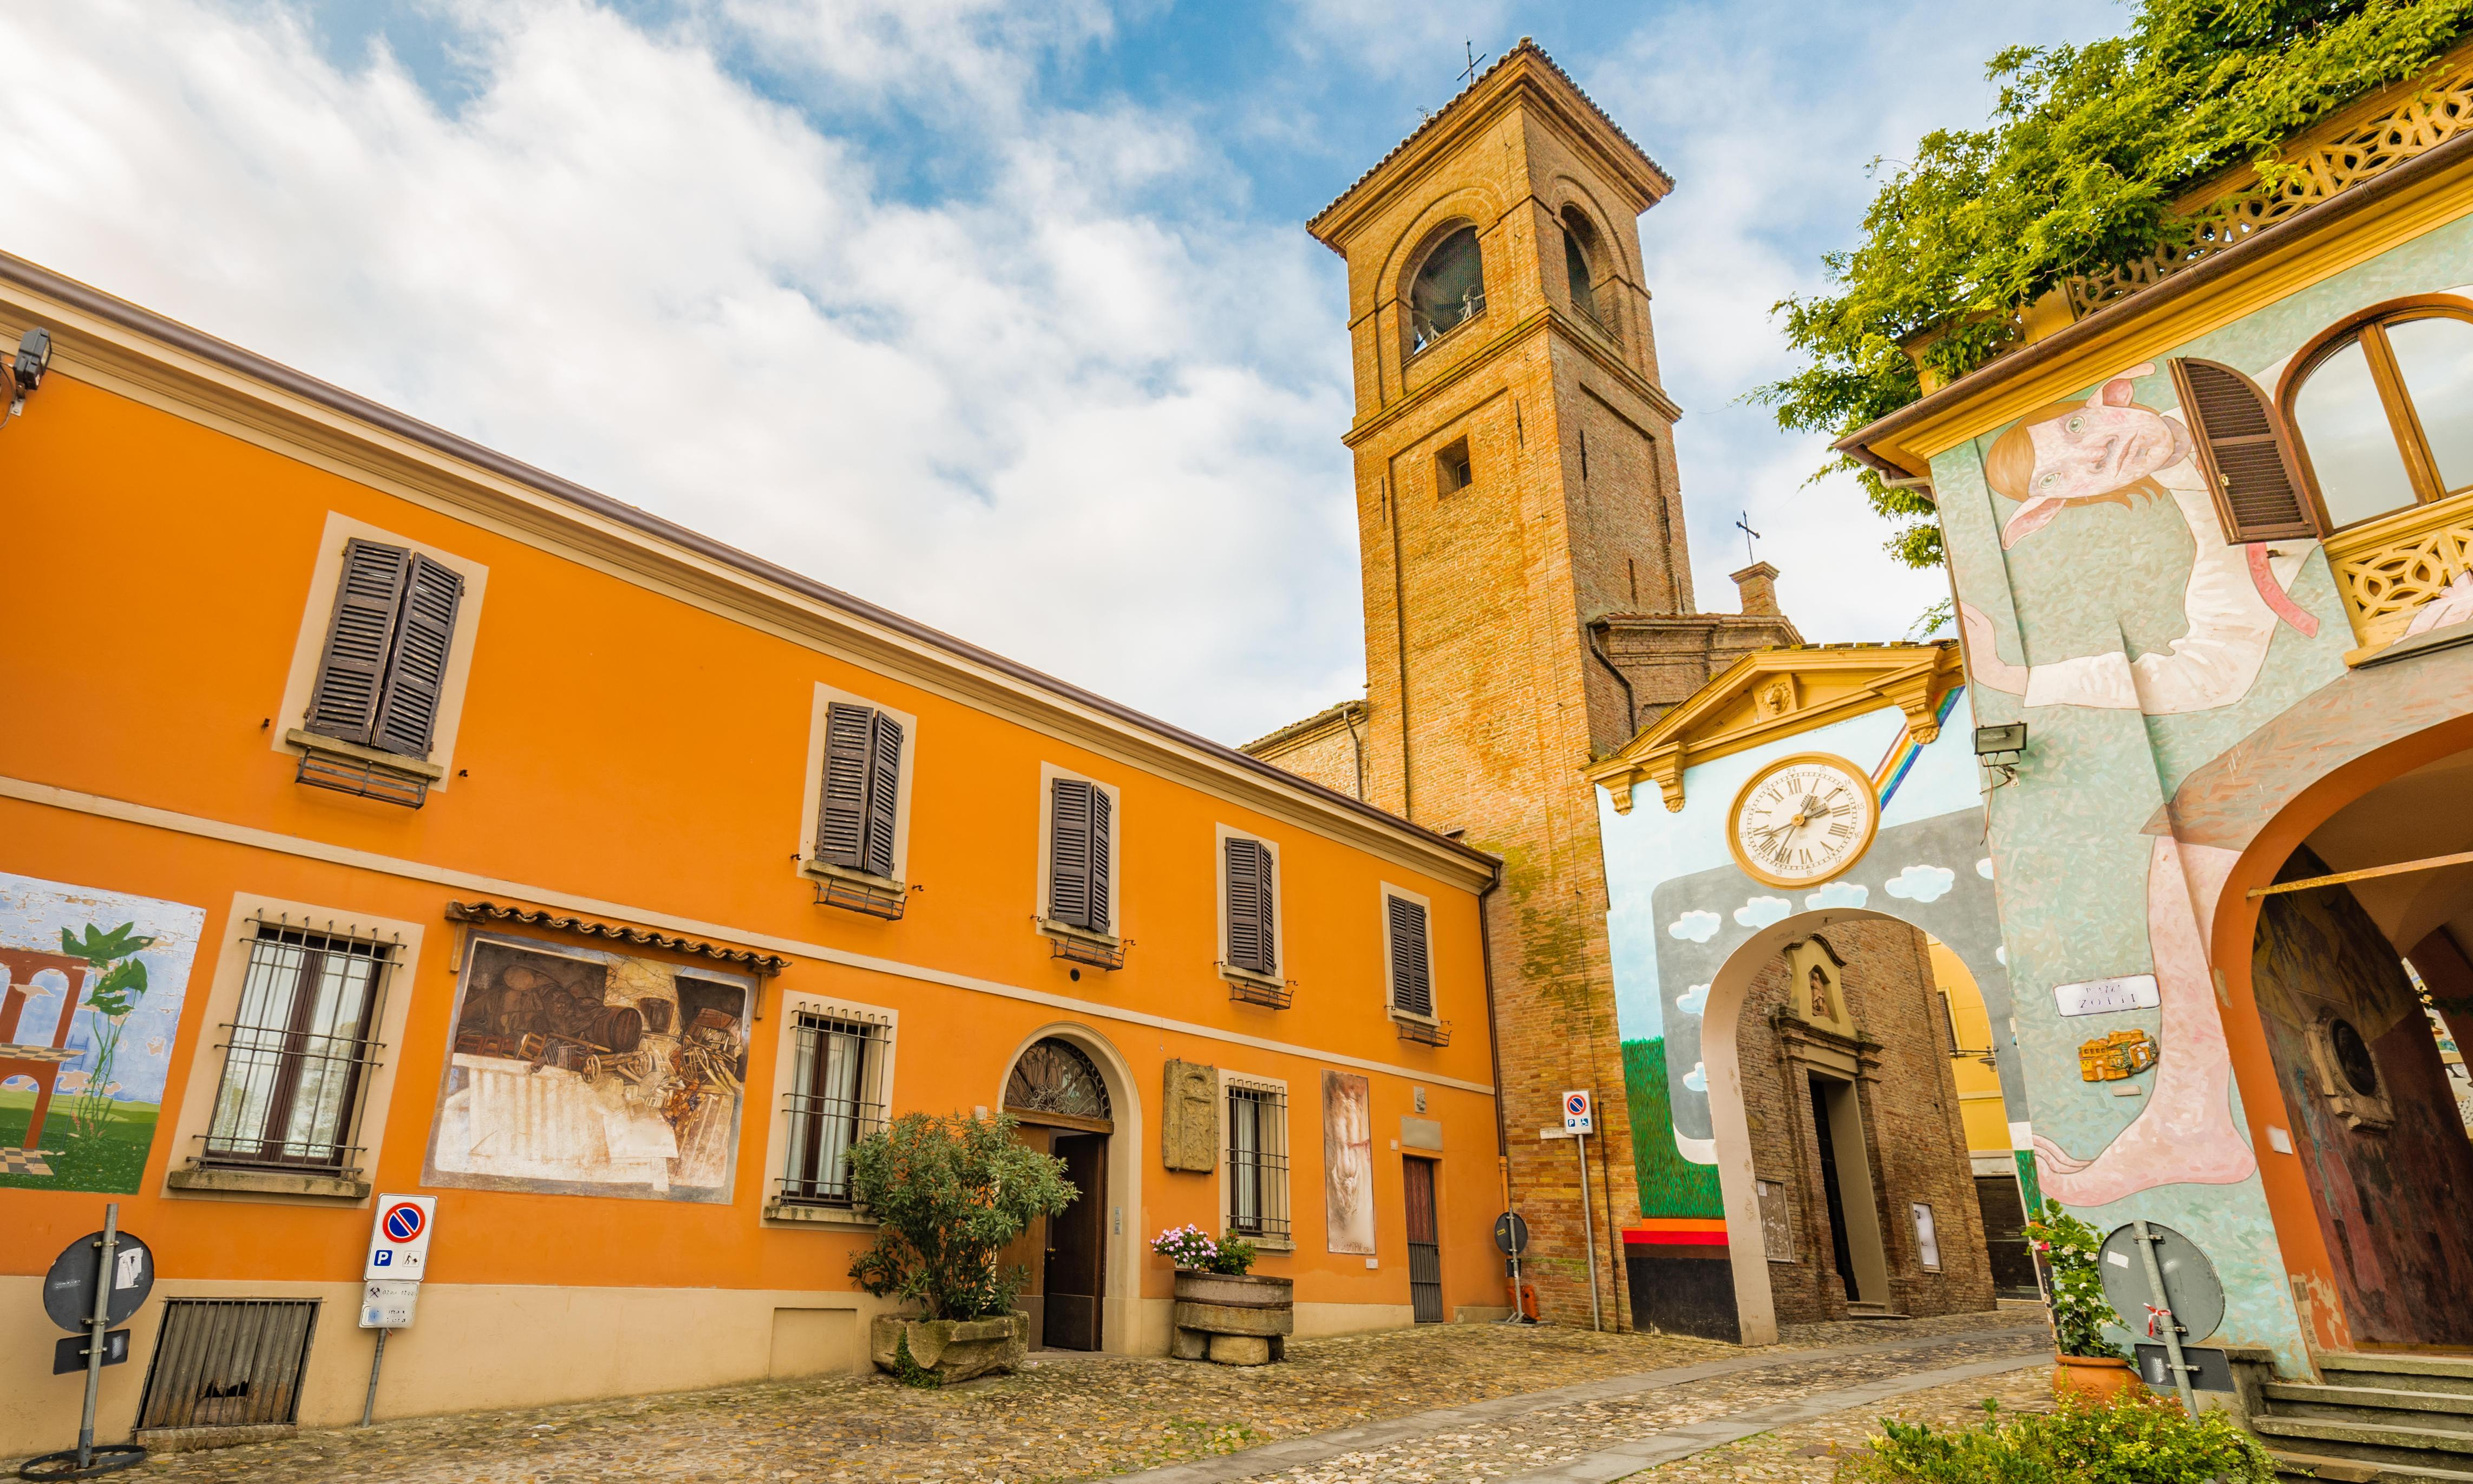 10 of the best attractions in Emilia-Romagna: readers' travel tips